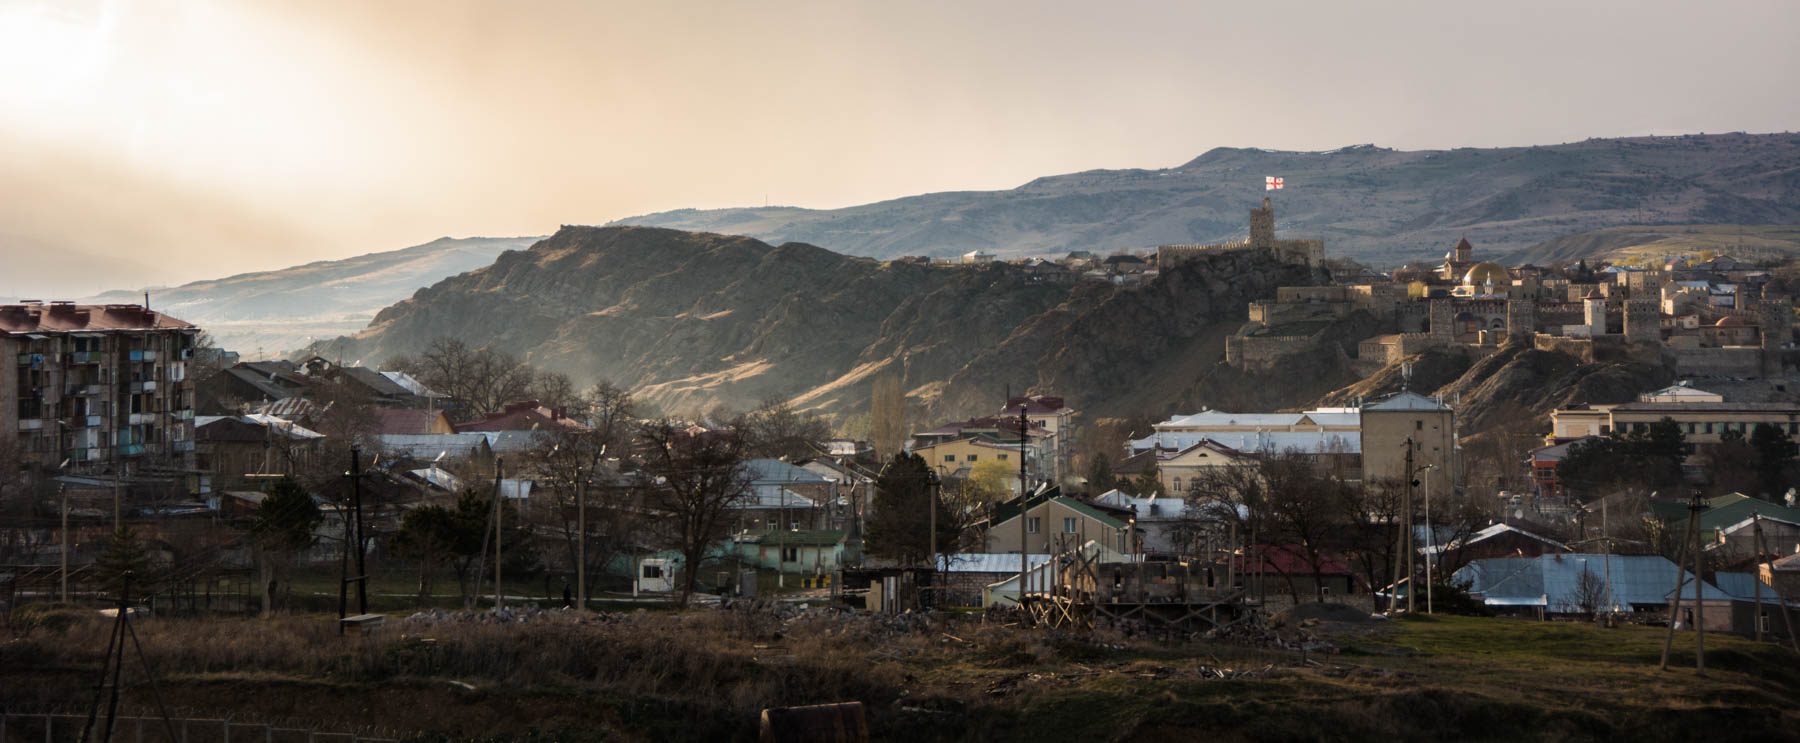 The city of Akhaltsikhe, Georgia at sunset.